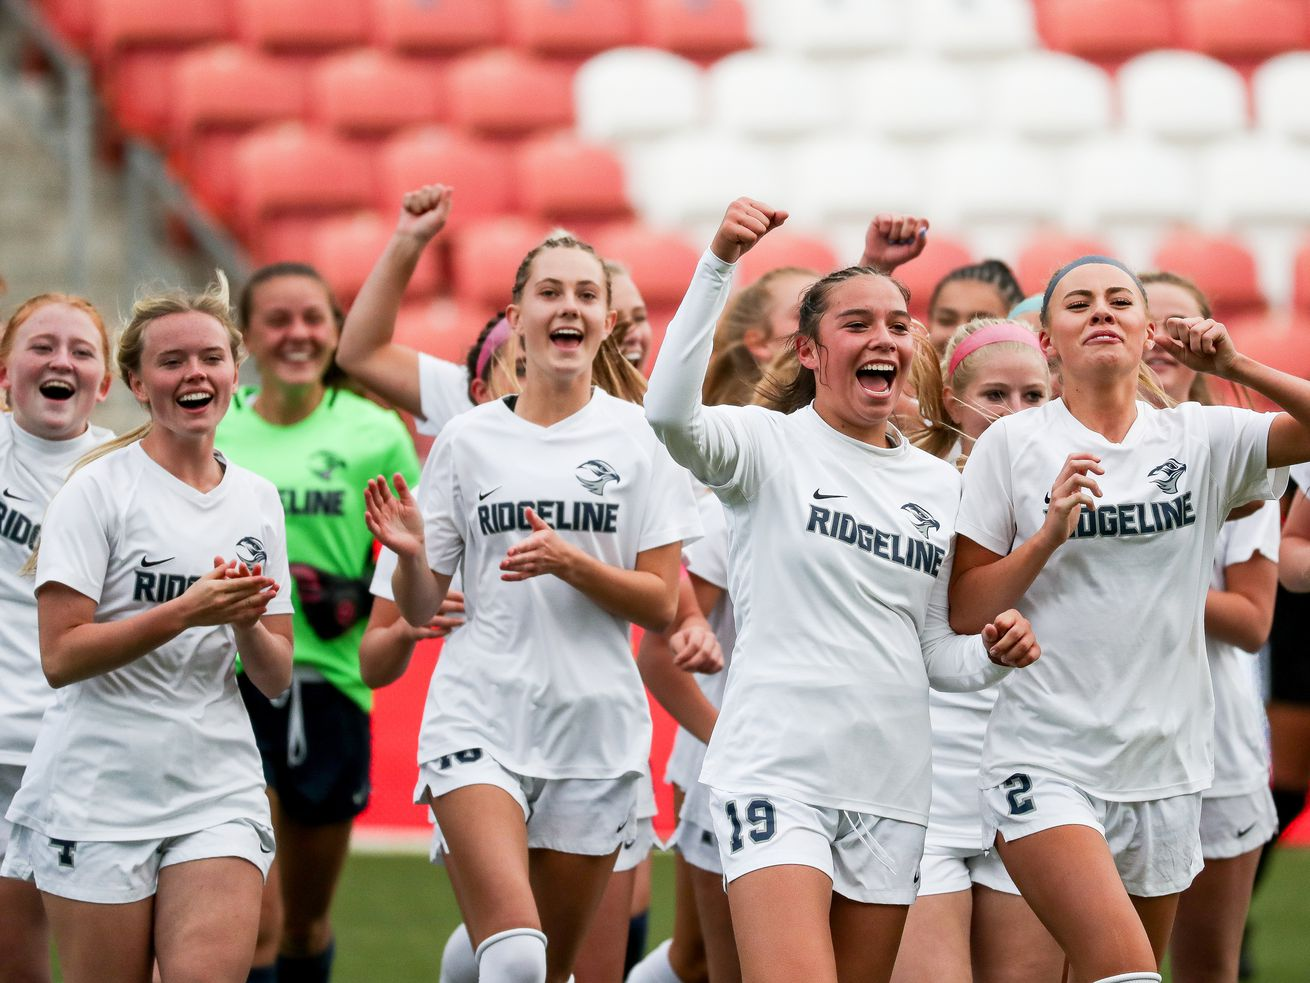 High school soccer: Adeline Fiefia's late winner lifts poised Ridgeline to 4A state championship